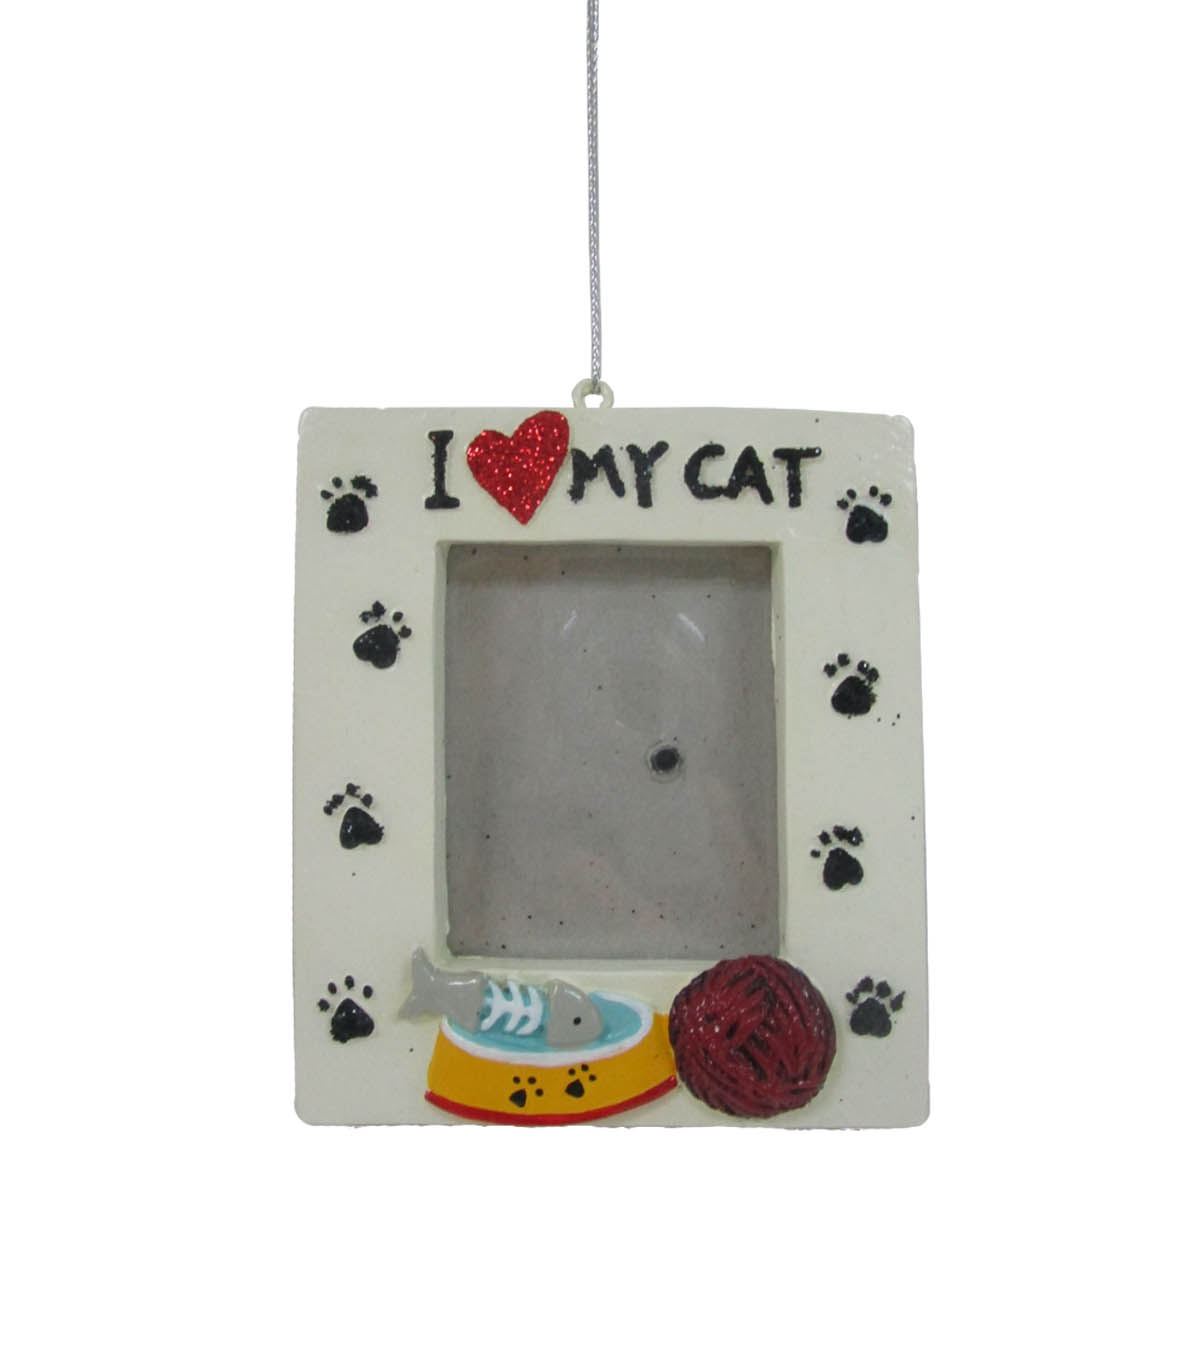 Makers Holiday Christmas Frame Ornament I Love My Cat Joann